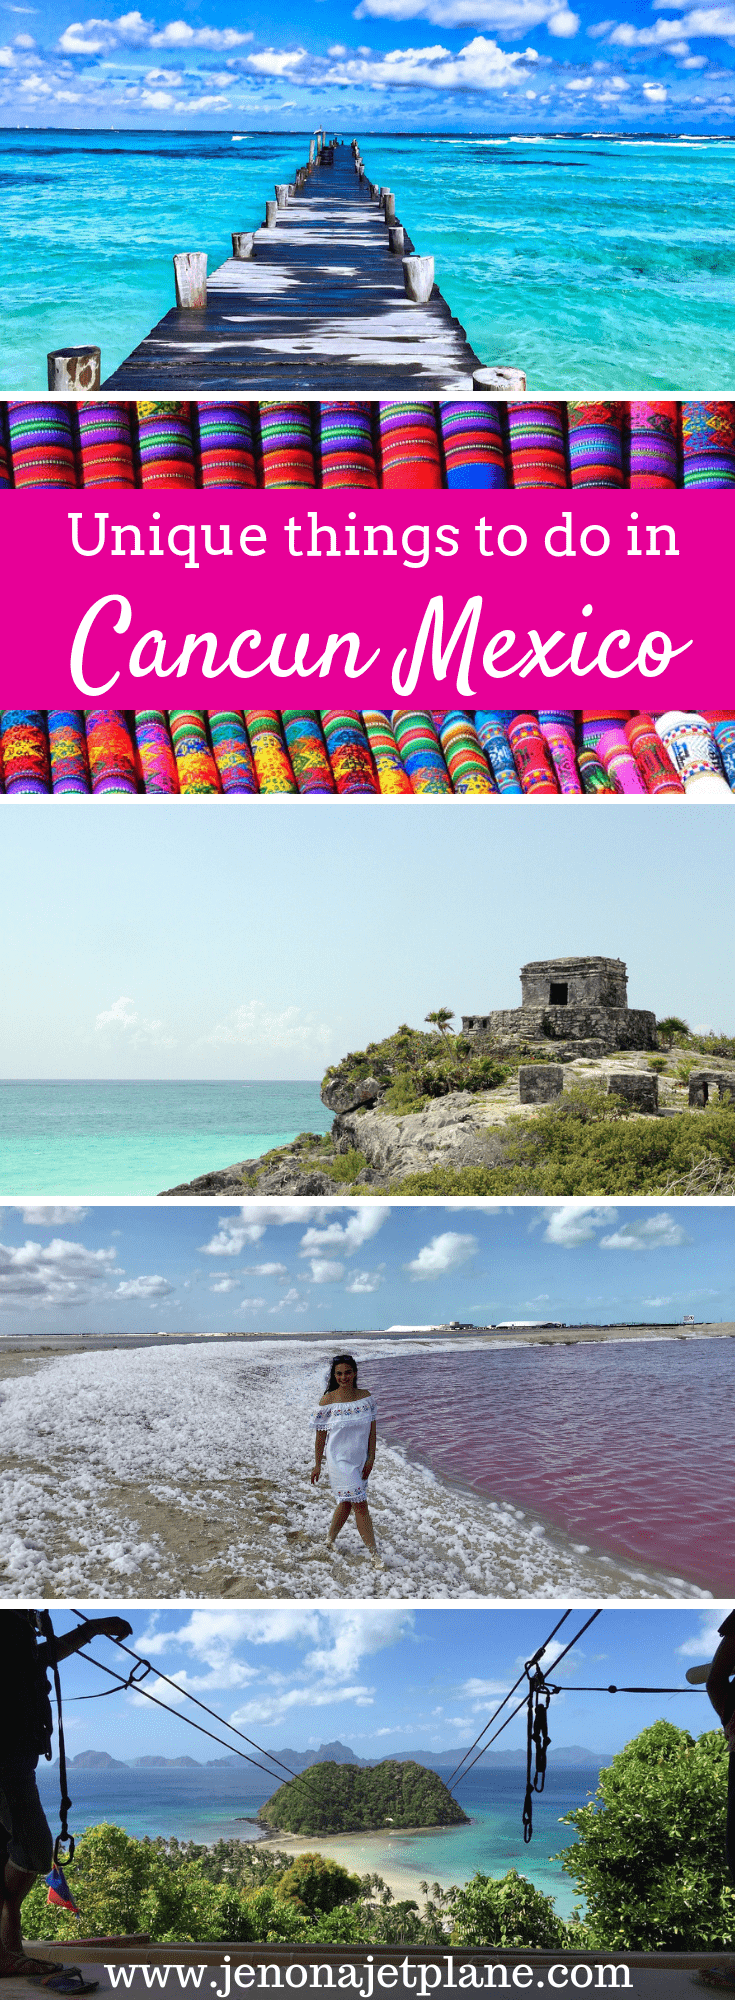 Looking for unique things to do in Cancun, Mexico away from the hotel strip? From swimming with whale sharks to seeing pink rivers on a day trip to Las Coloradas, here are 9 unforgettable adventures in Cancun you can't miss. Save to your travel board for future reference. #cancun #cancunmexico #mexicotravel #thingstodoinCancun #adventuretravel #bucketlist #travelinspiration